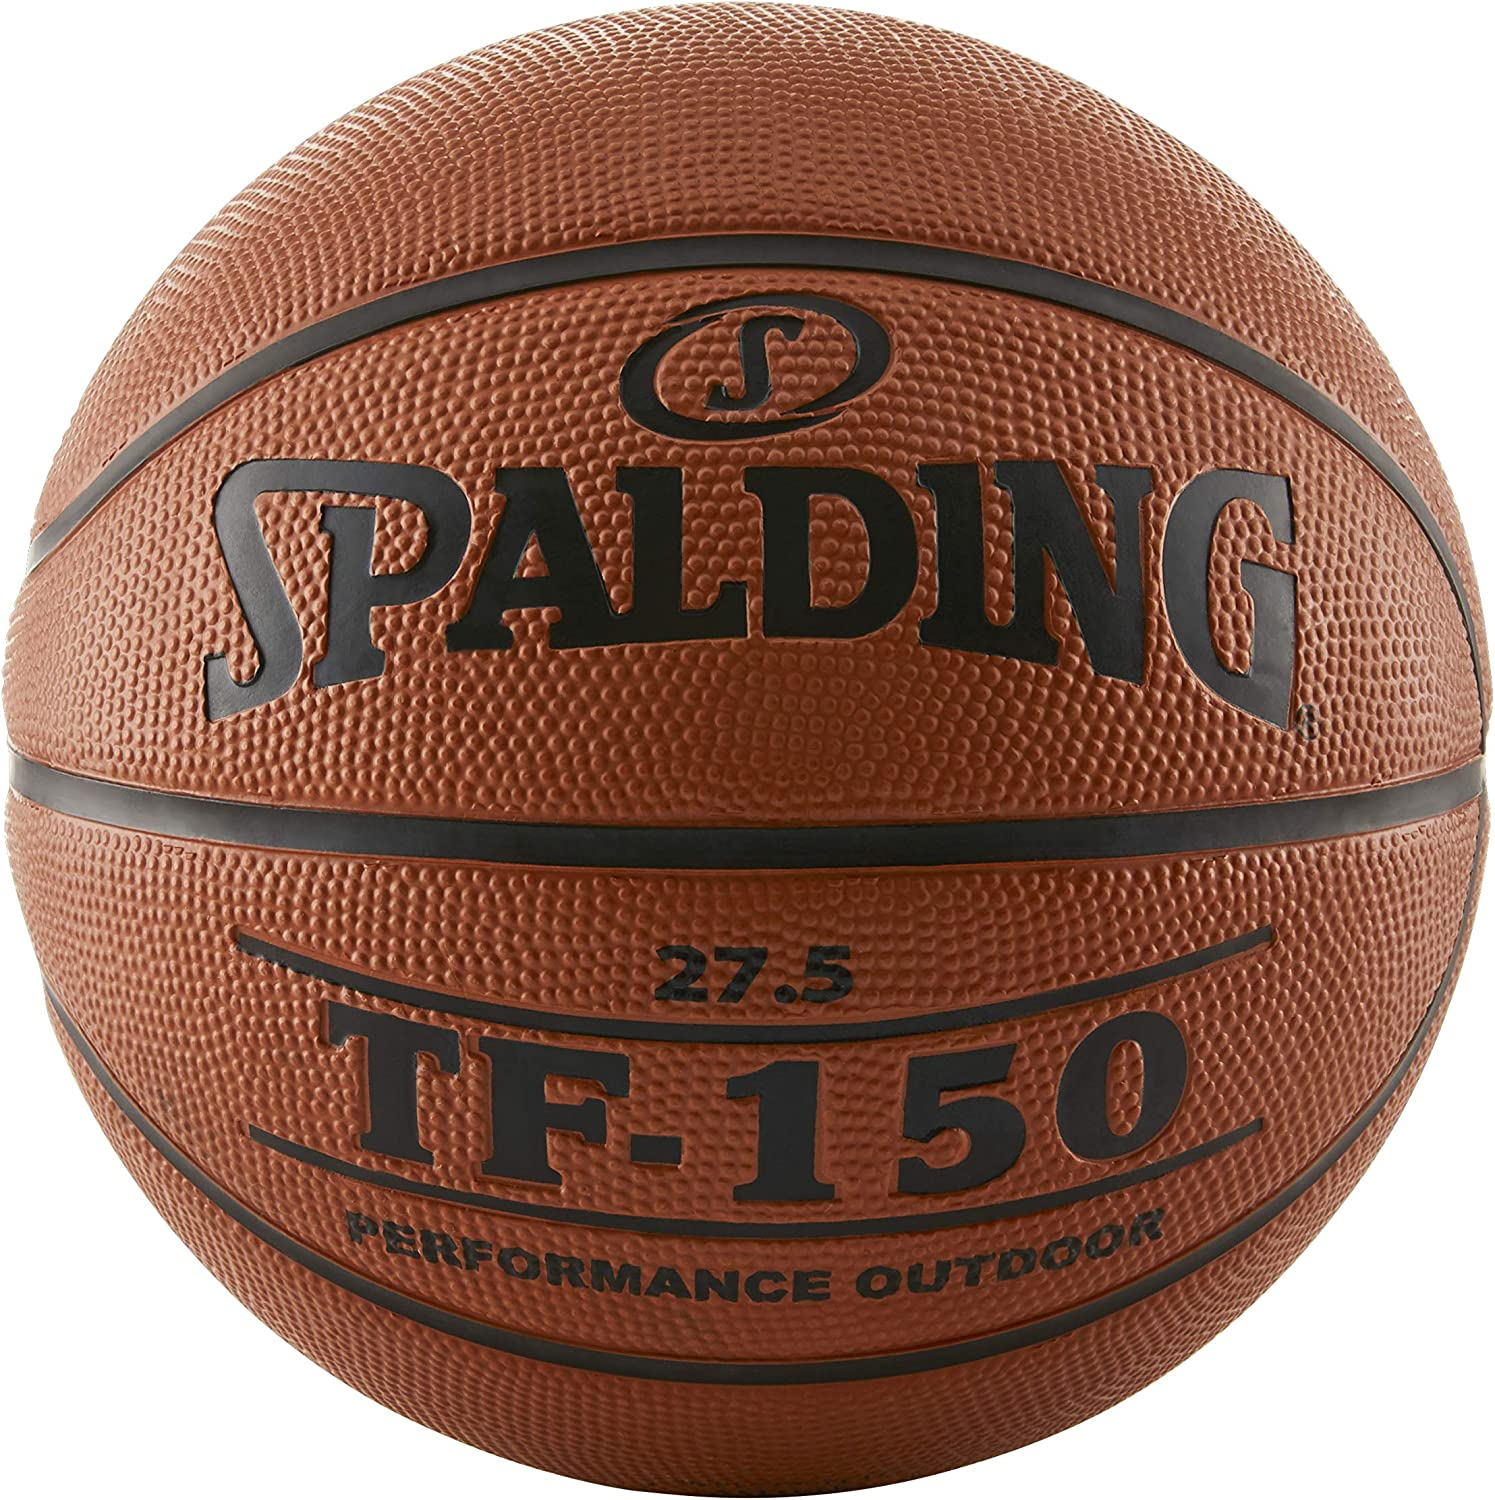 Spalding TF-150 Outdoor Basketball : Everything Else